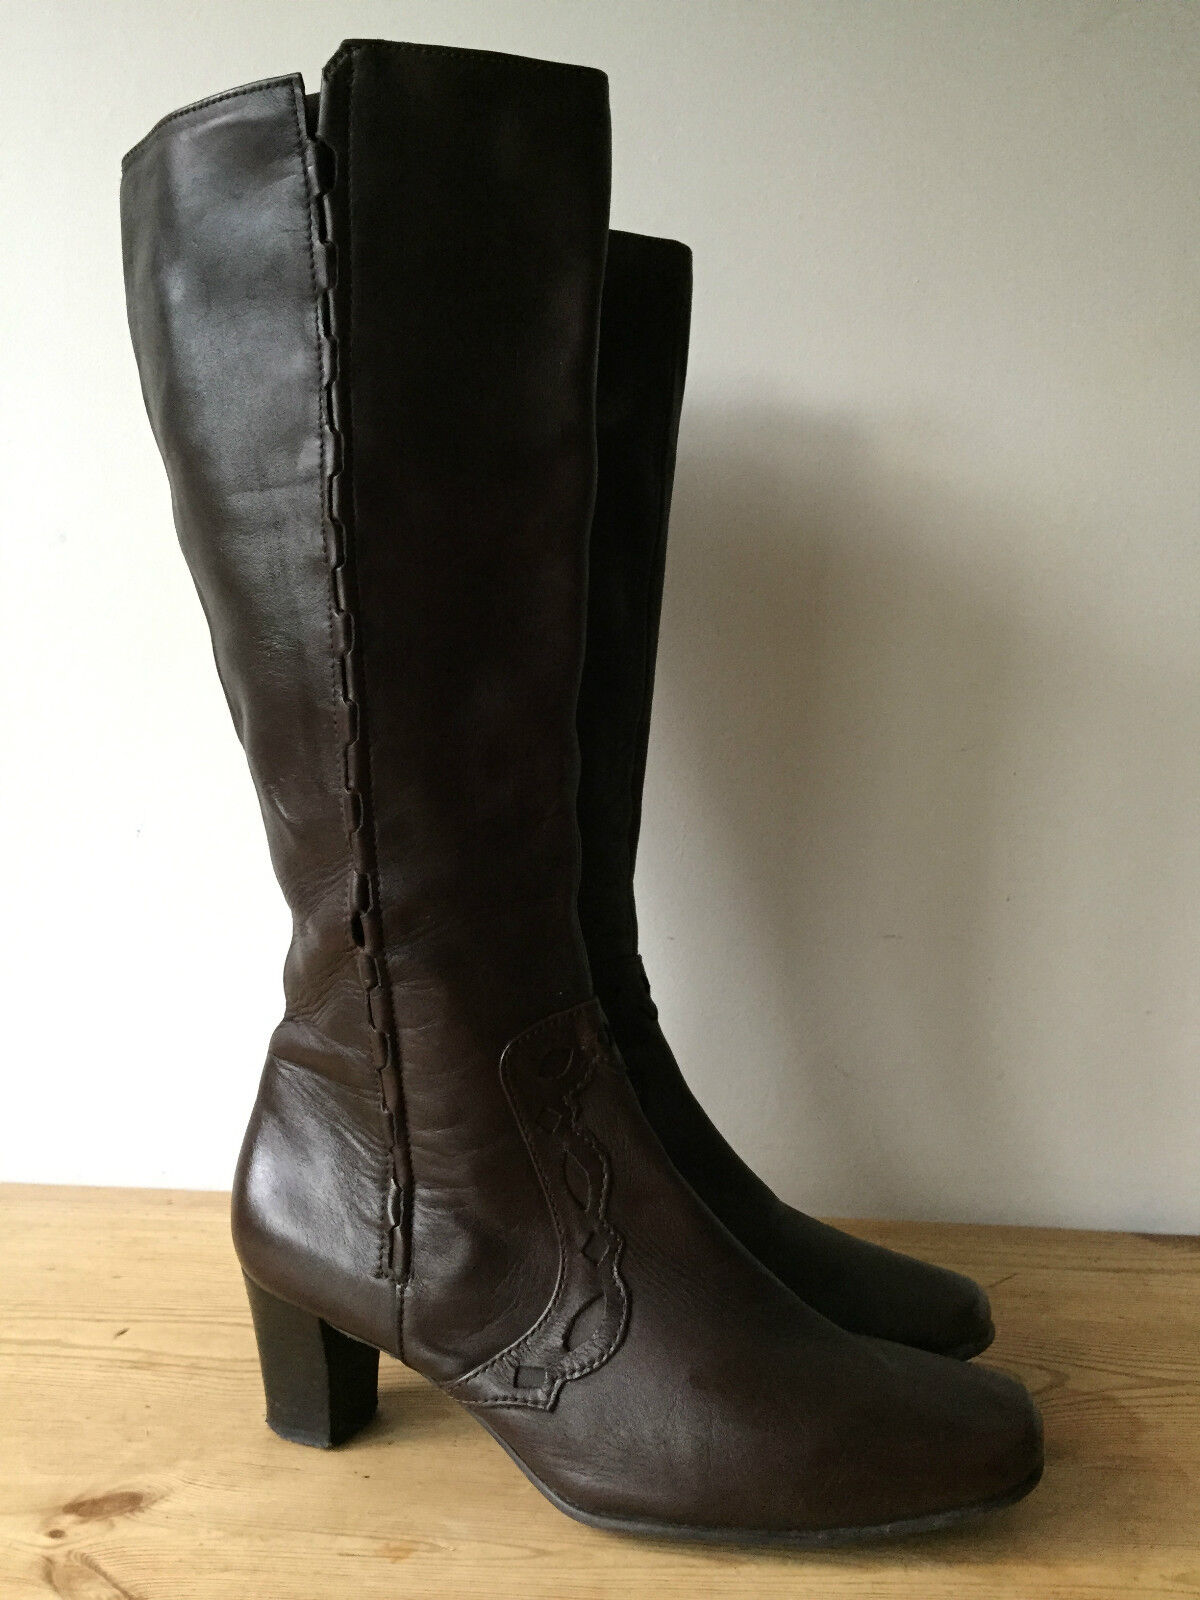 K by CLARKS LADIES BROWN LEATHER KNEE HIGH BOOTS UK7